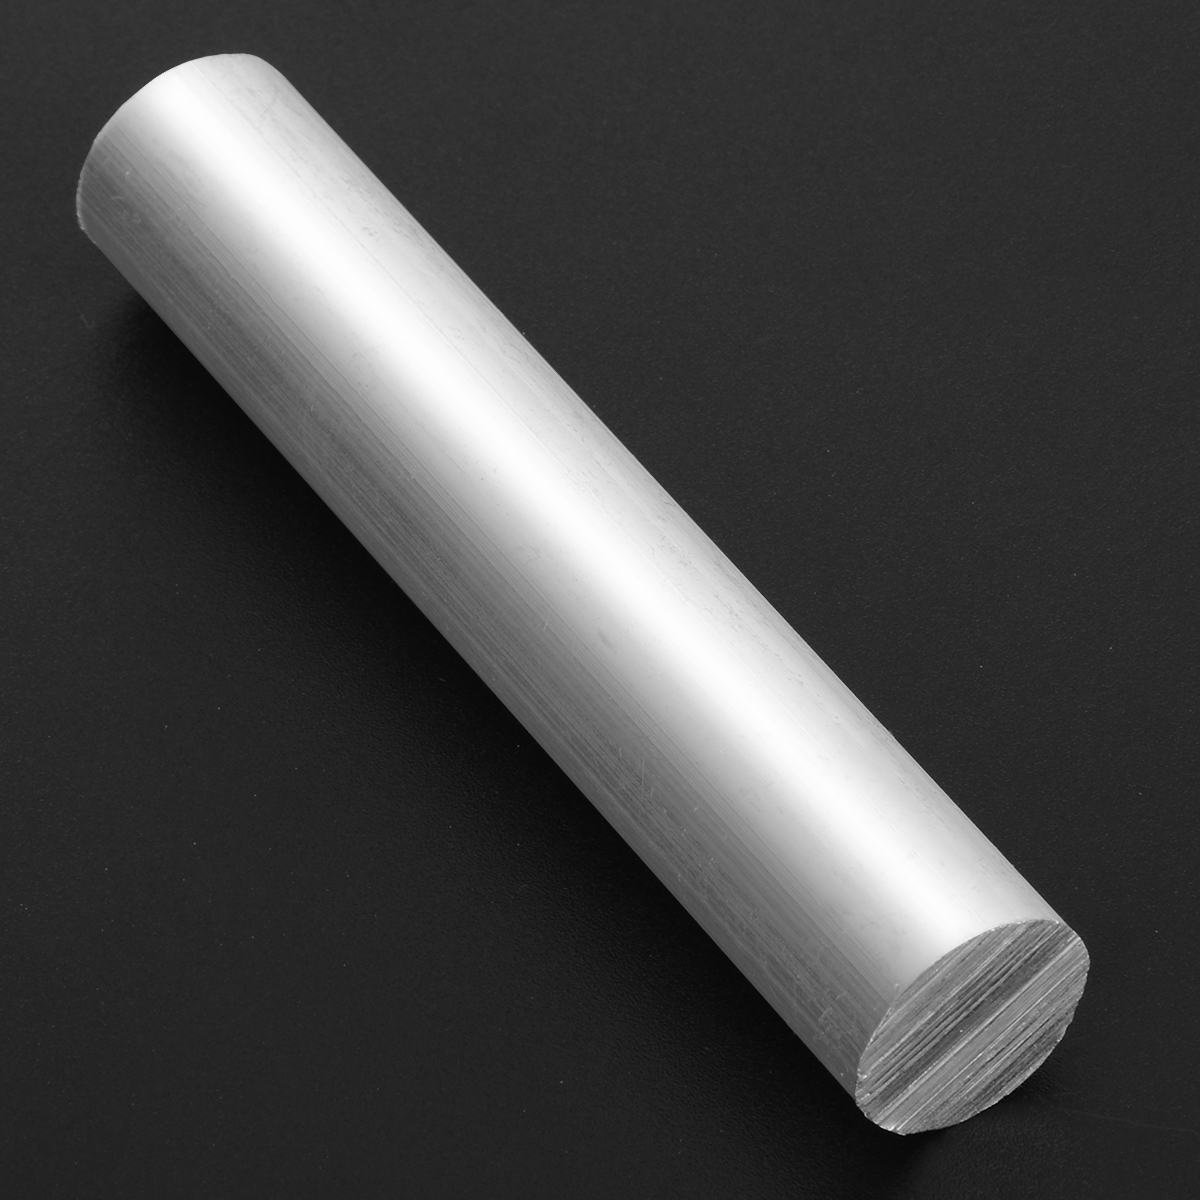 1pc Purity 99.99% Mg Magnesium Metal Rod 16mm X 9cm High Purity Metal Welding Soldering Mg Rod Bar